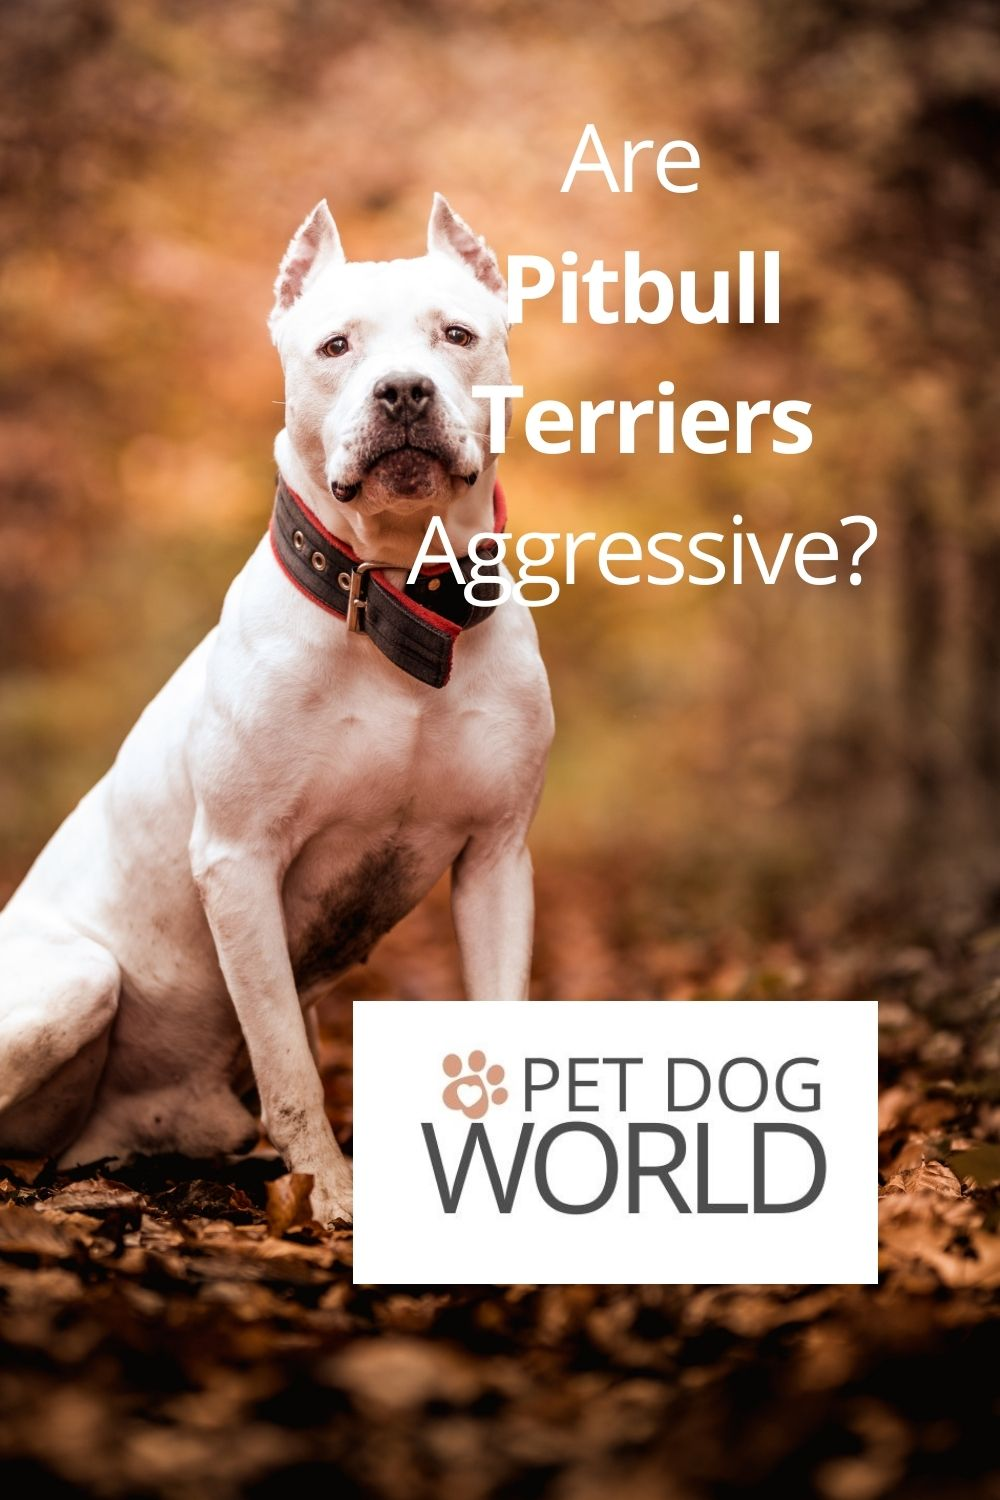 Experts agree that it is the owner responsibility (or the lack thereof) that determines the social capabilities and behaviour of any dog, not just Pitbull types.